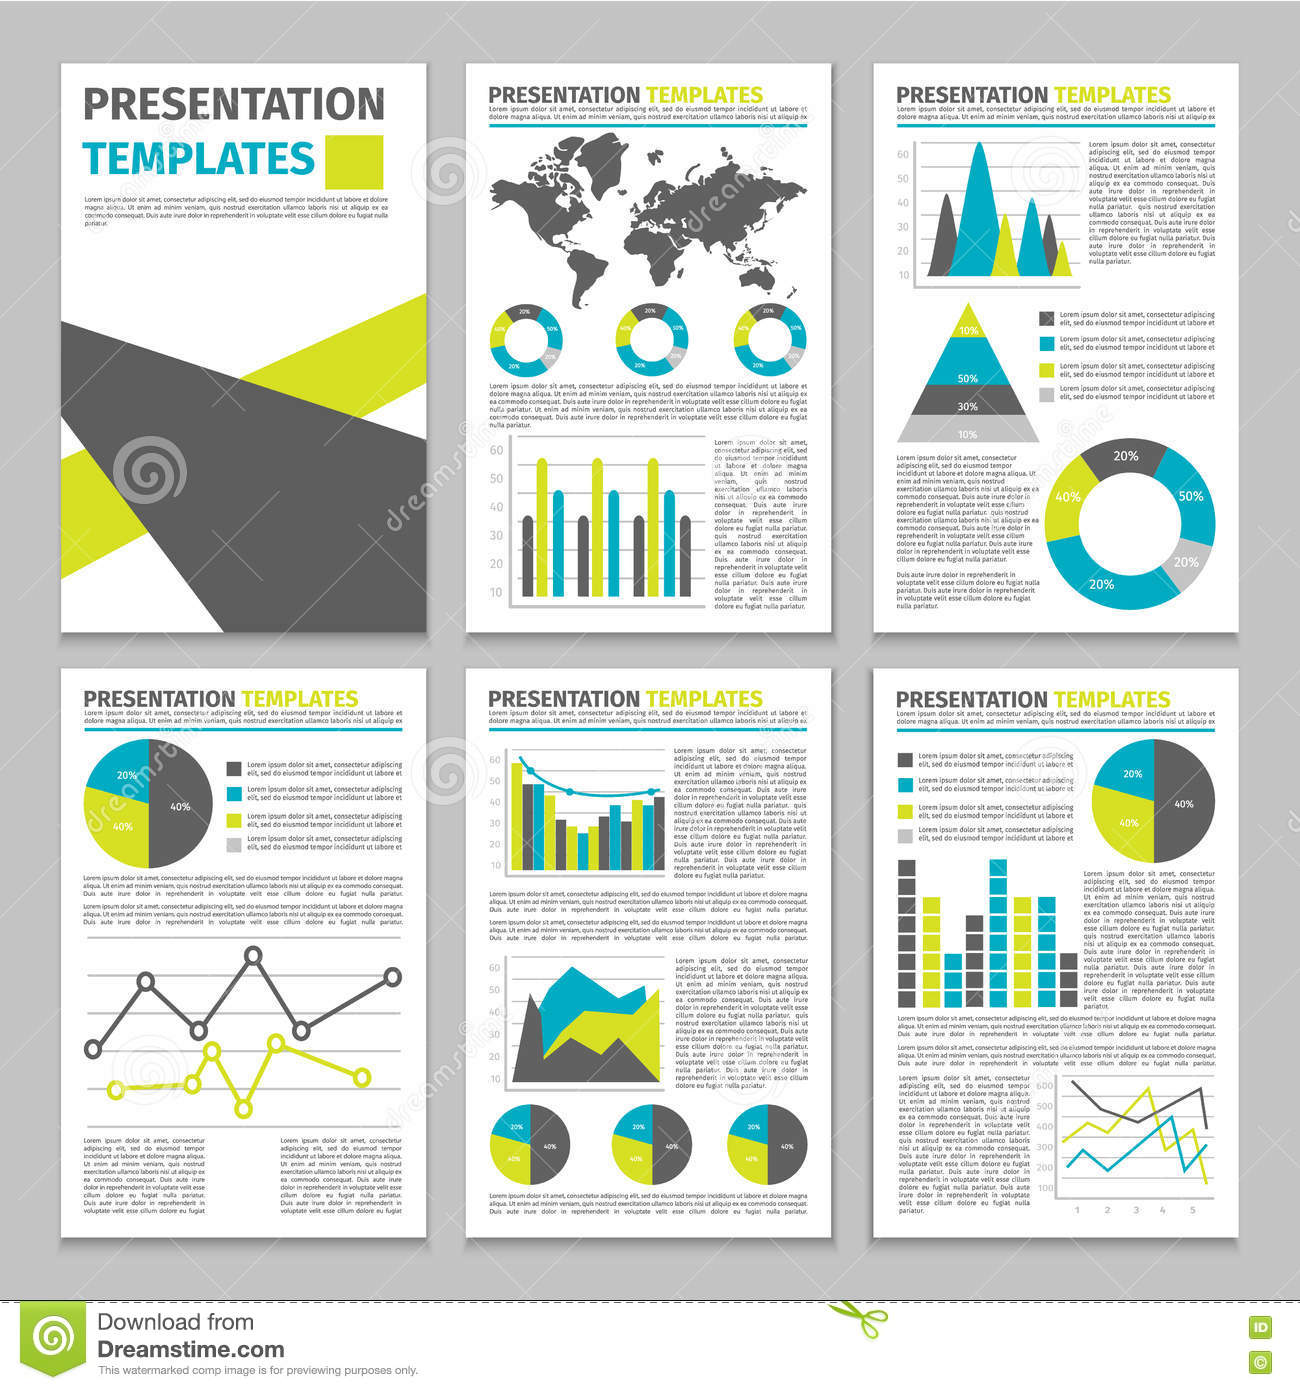 How the right graphics take presentations to a new level